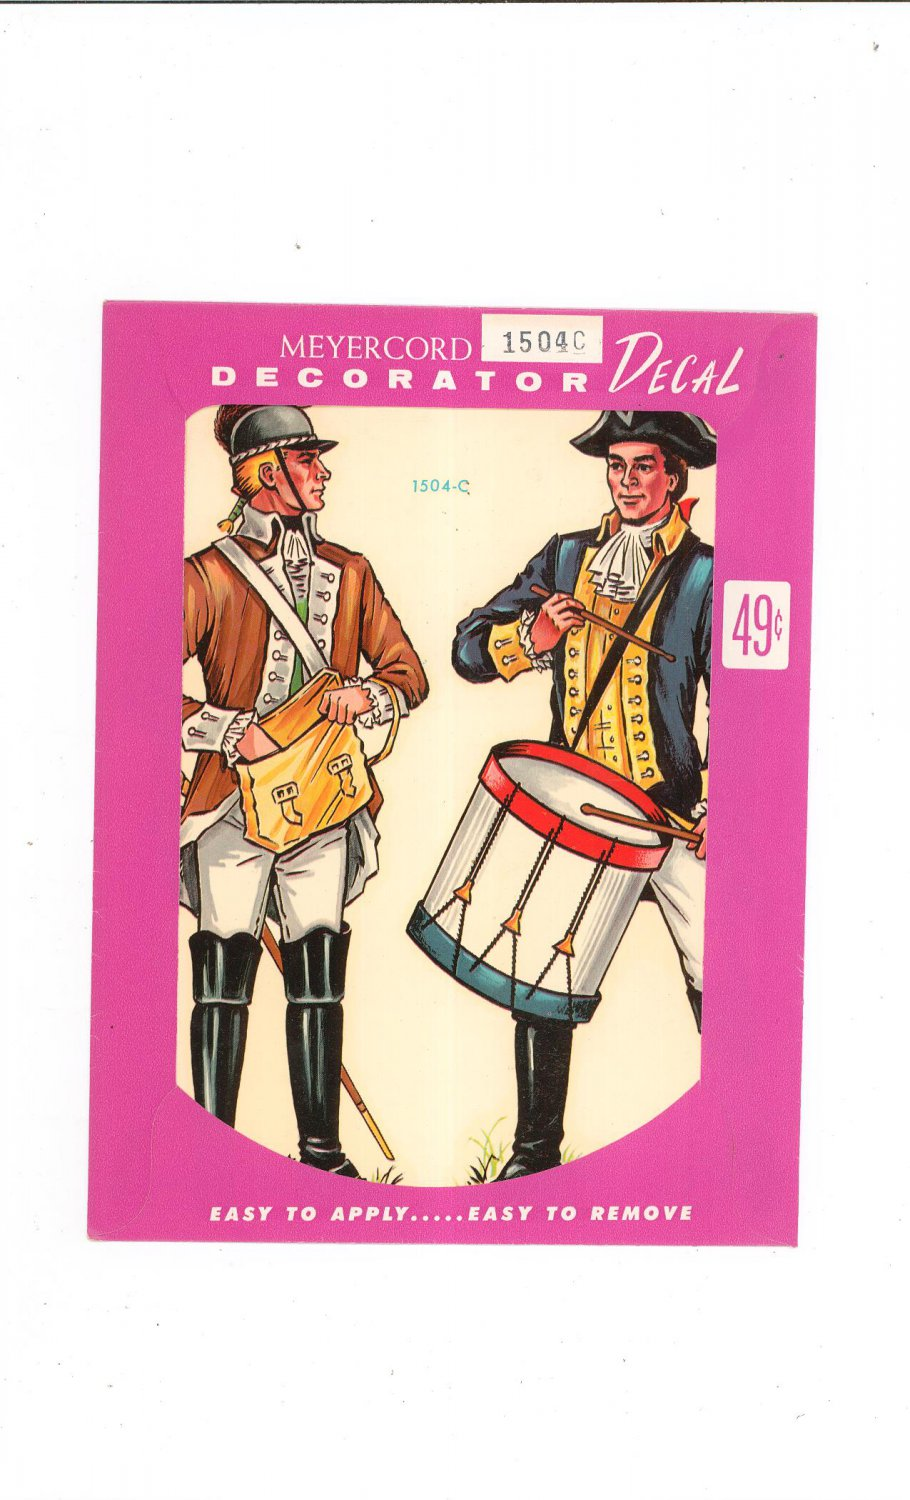 Vintage Lot Of 2 Meyercord Decorator Decals 1504C & 1504D In Package